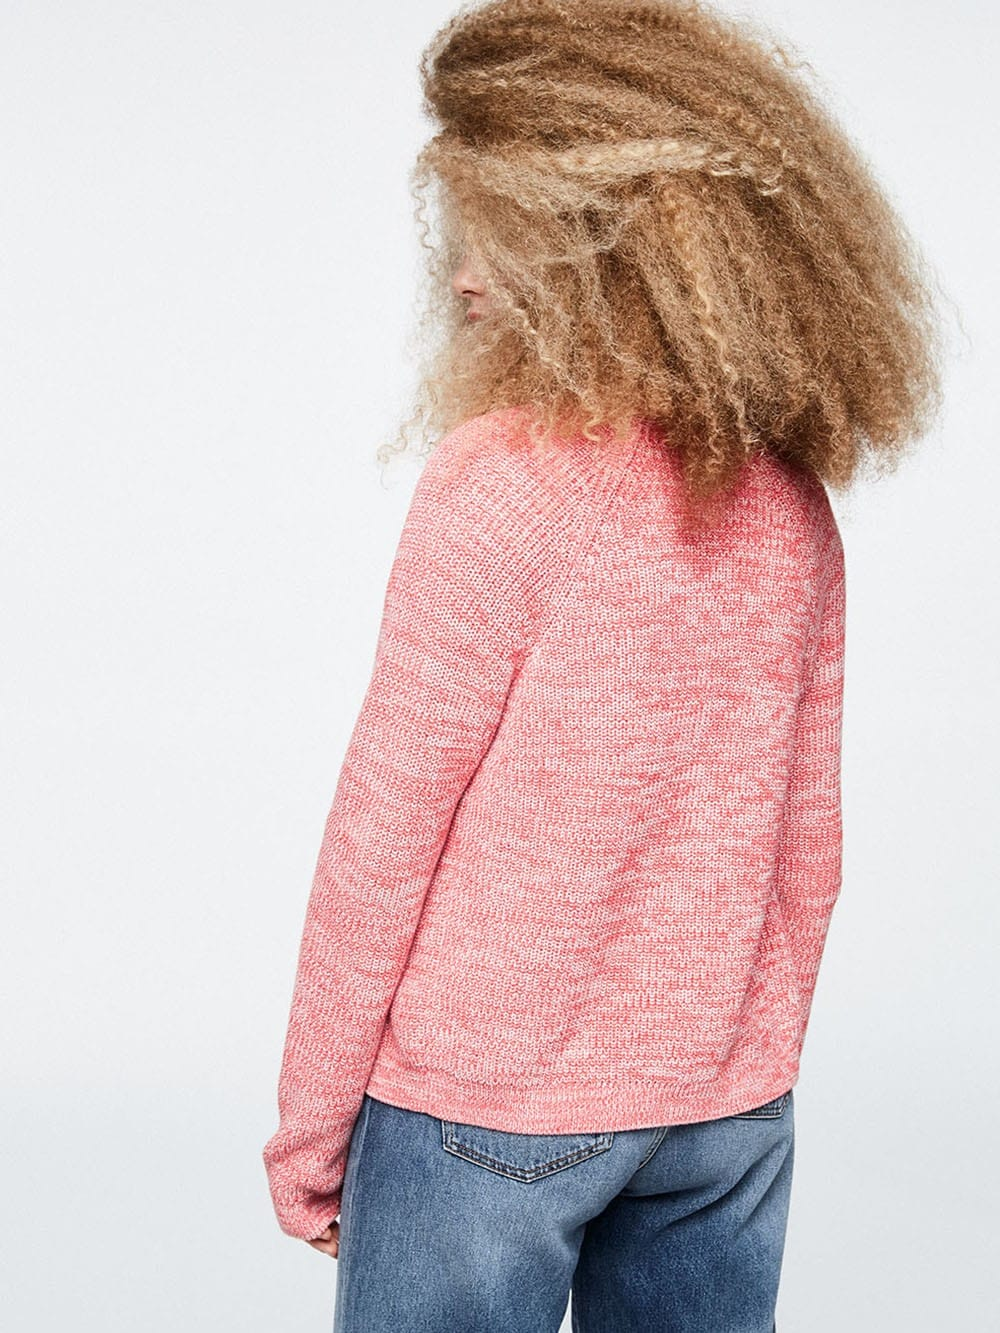 Organic cotton pink knit jacket-Maarion Melange